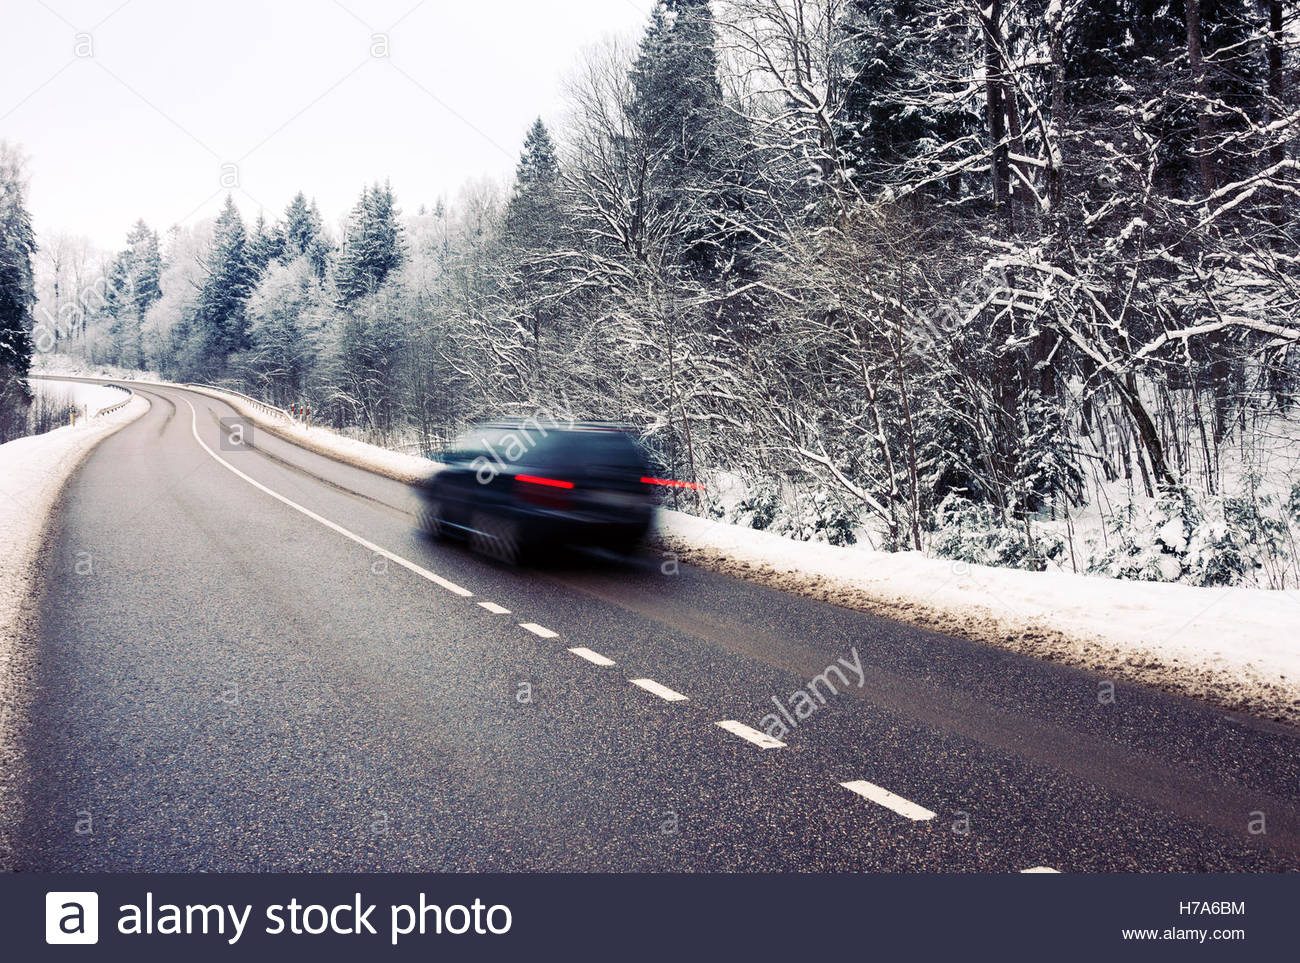 Lonely car in motion blur on the road in winter landscape - Stock Image